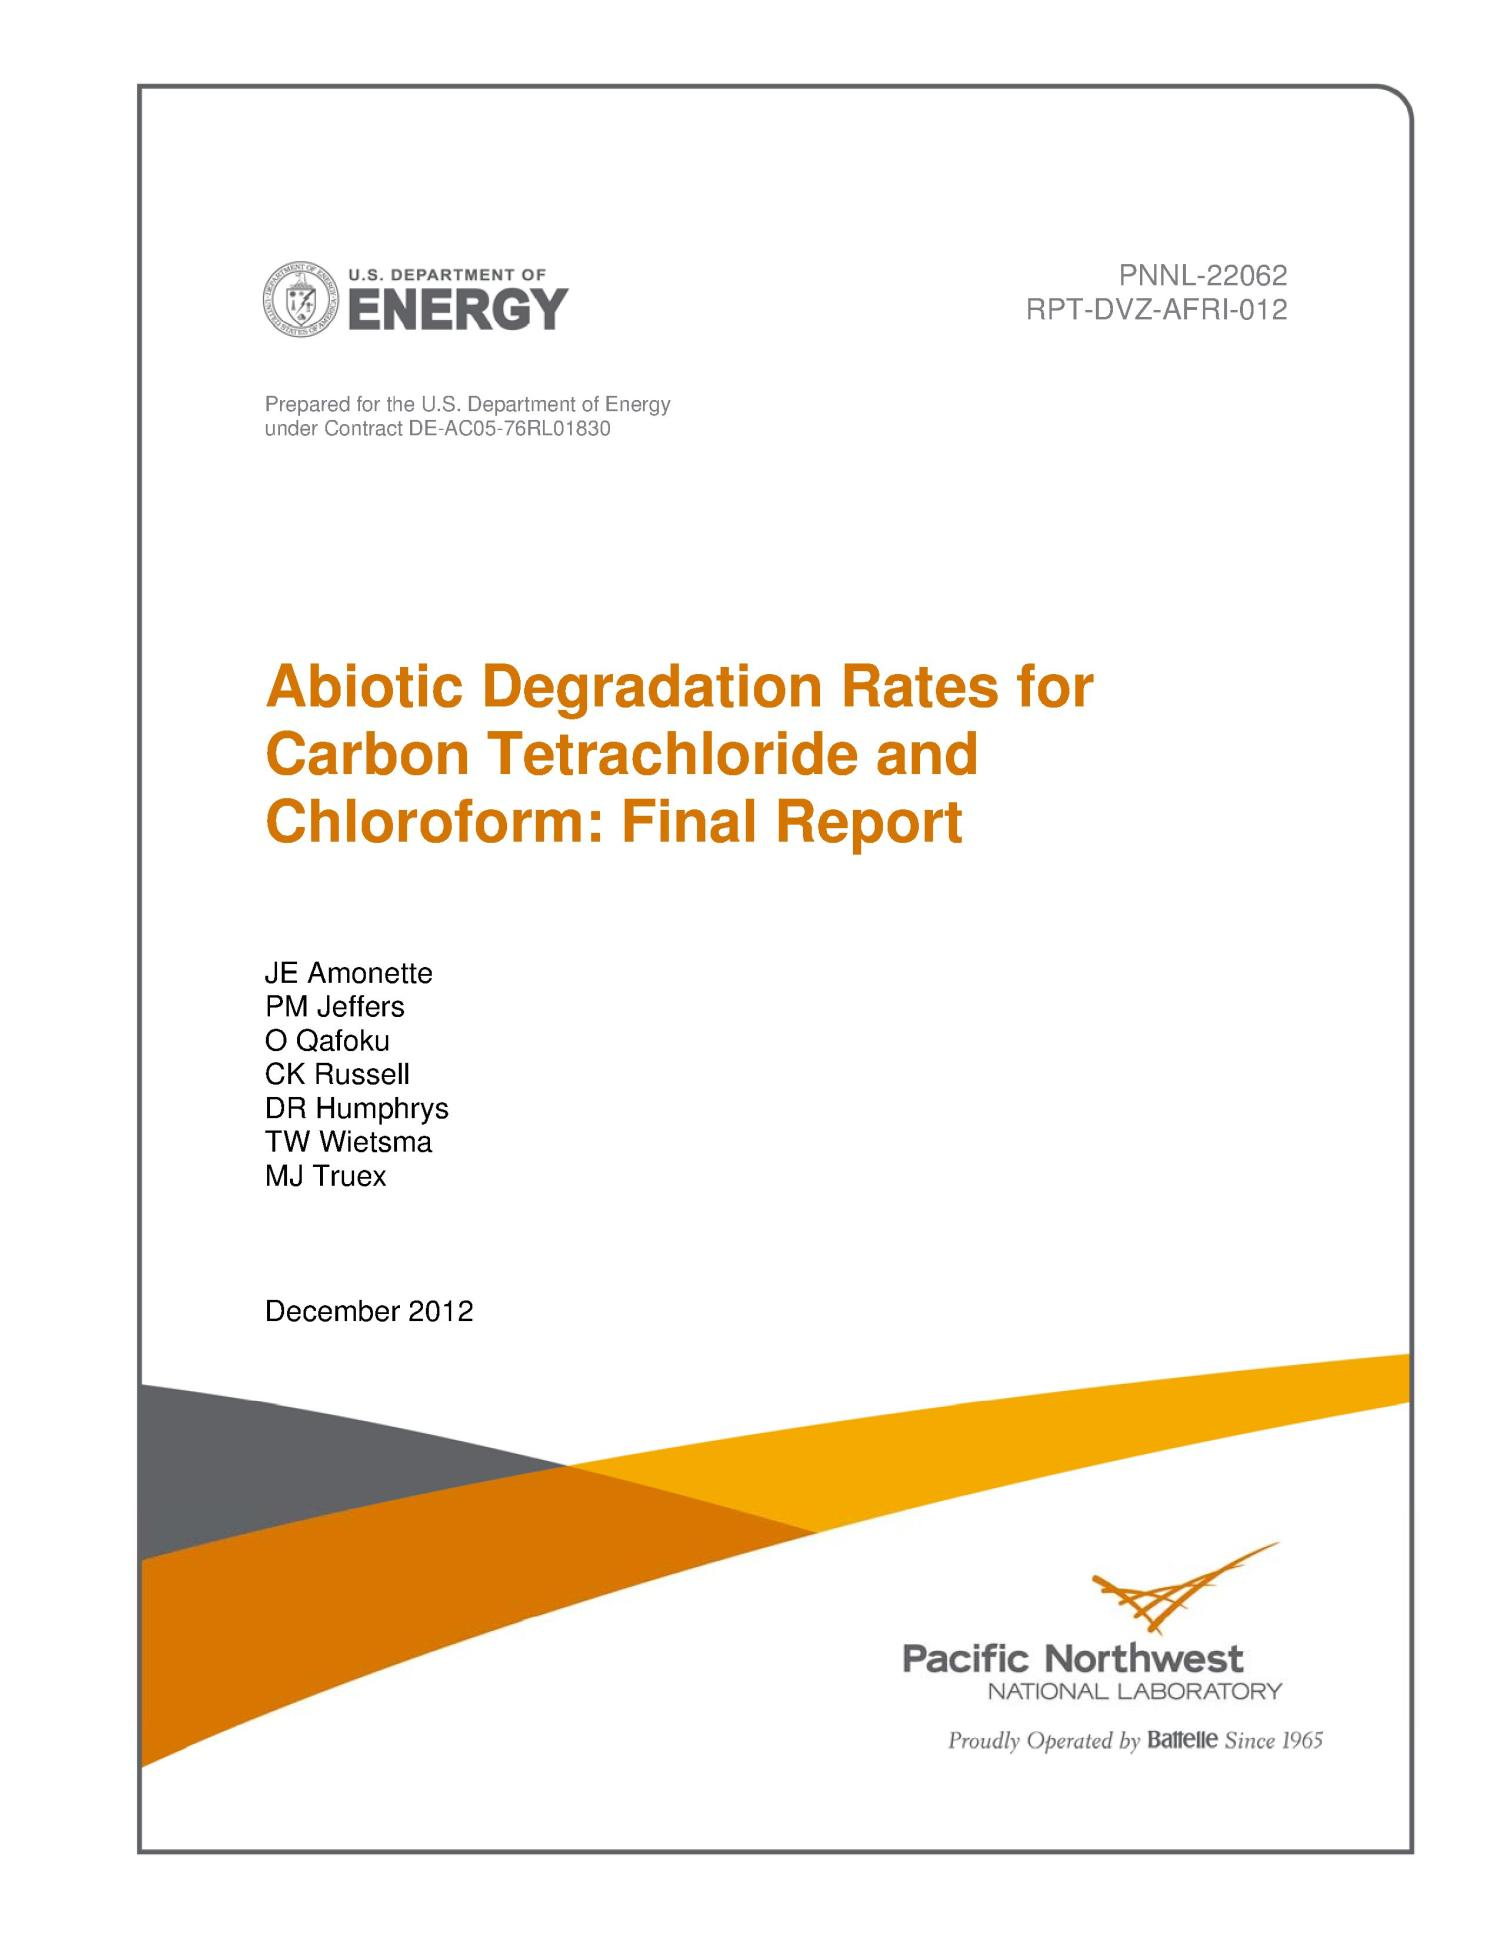 Abiotic degradation rates for carbon tetrachloride and chloroform: Final report.                                                                                                      [Sequence #]: 1 of 60